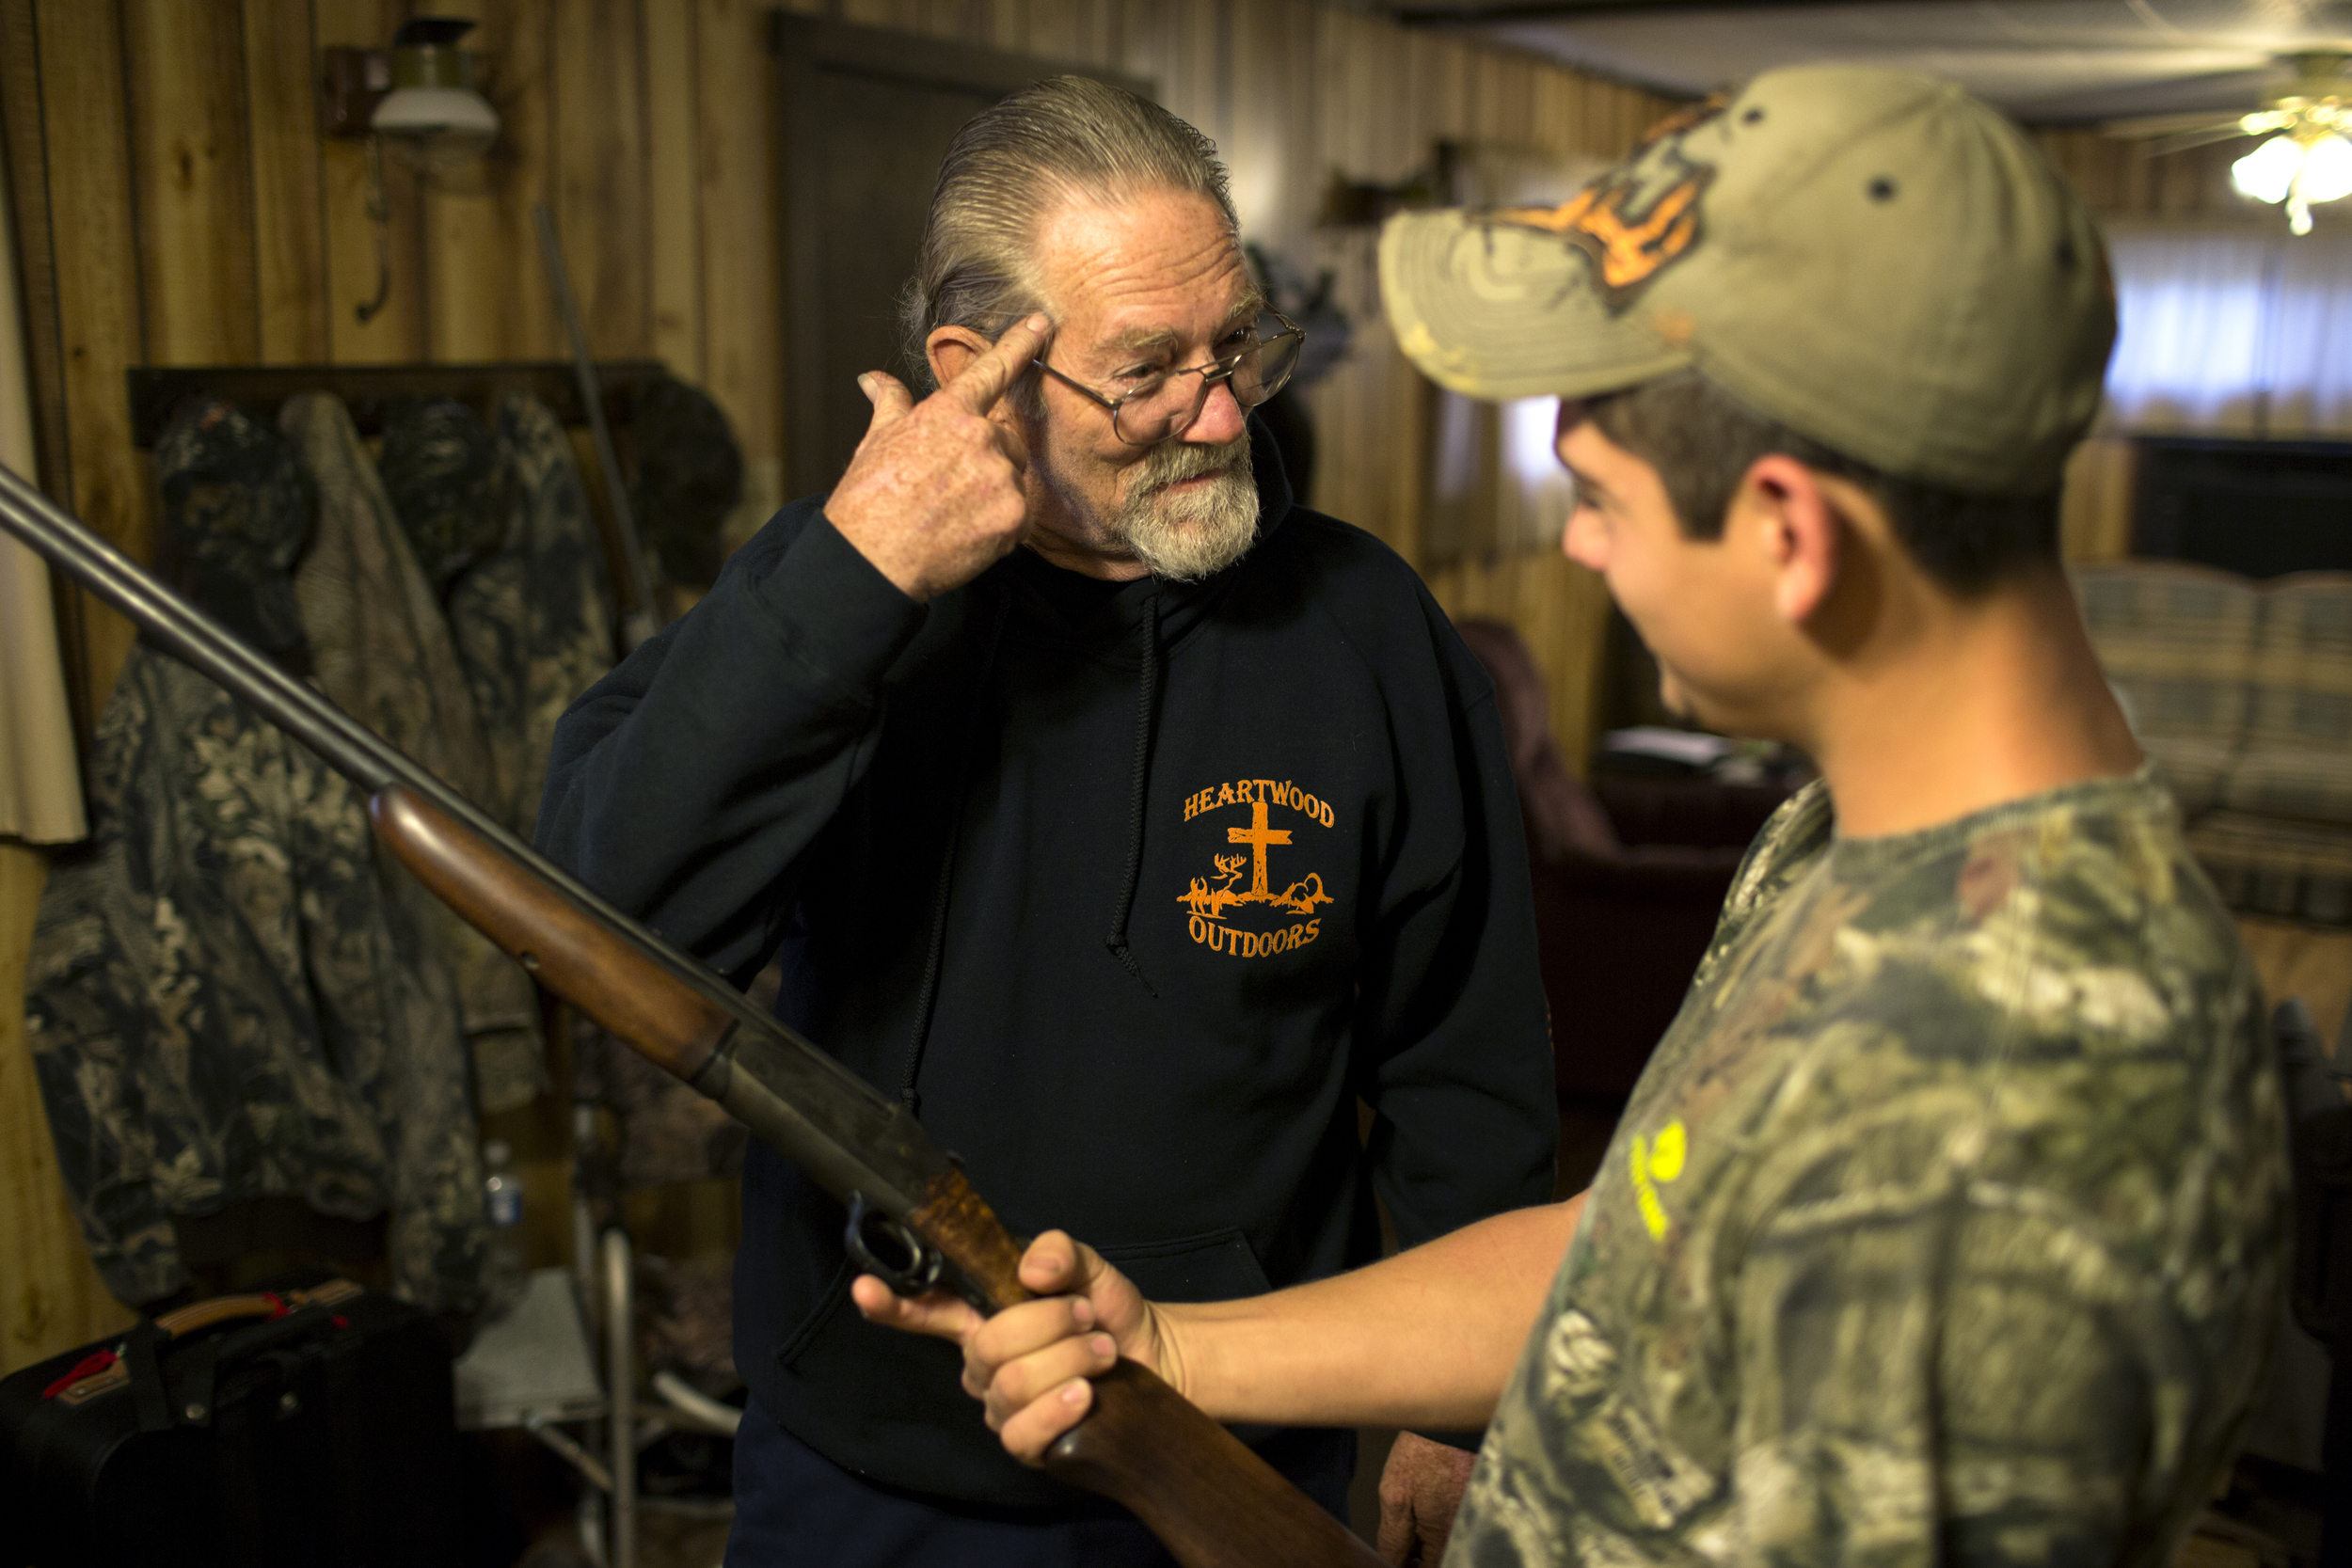 Doug explains to Dale the perks and efficiencies of hunting deer with a rifle rather than a bow at a hunting camp near Indian Springs, Maryland.